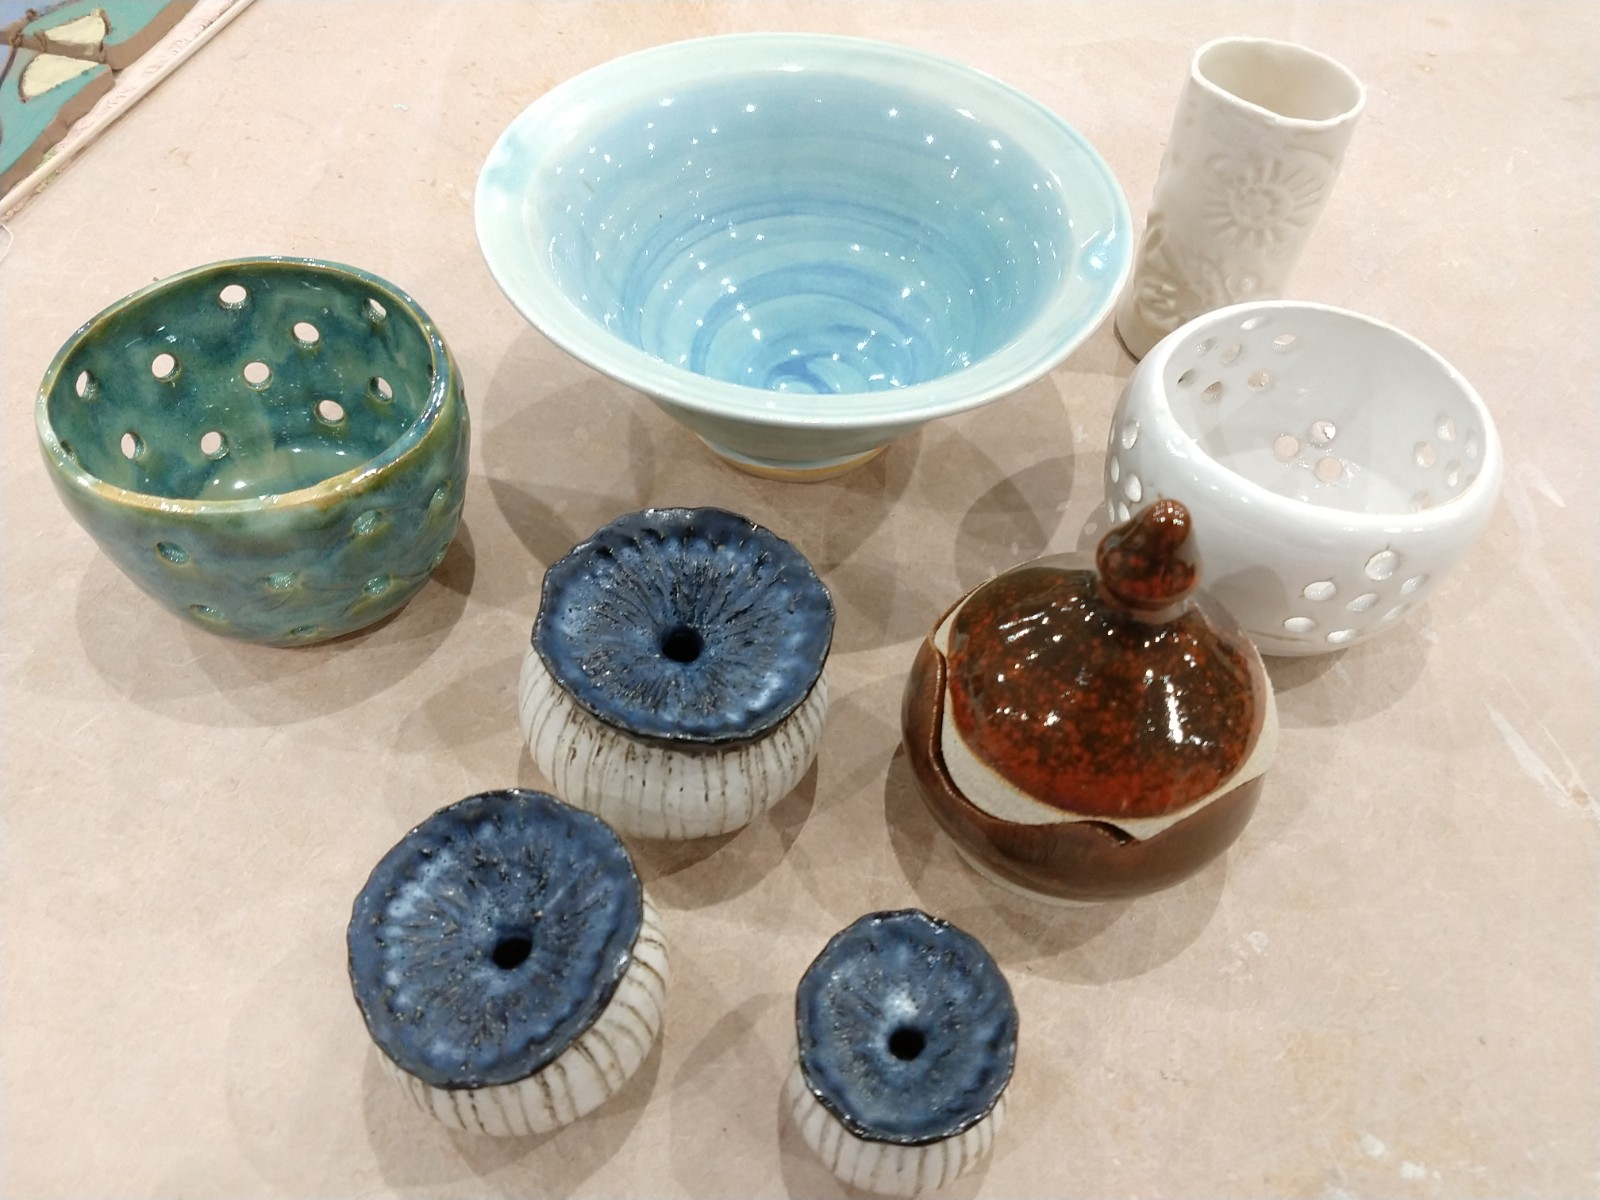 Smaller pots from the kiln